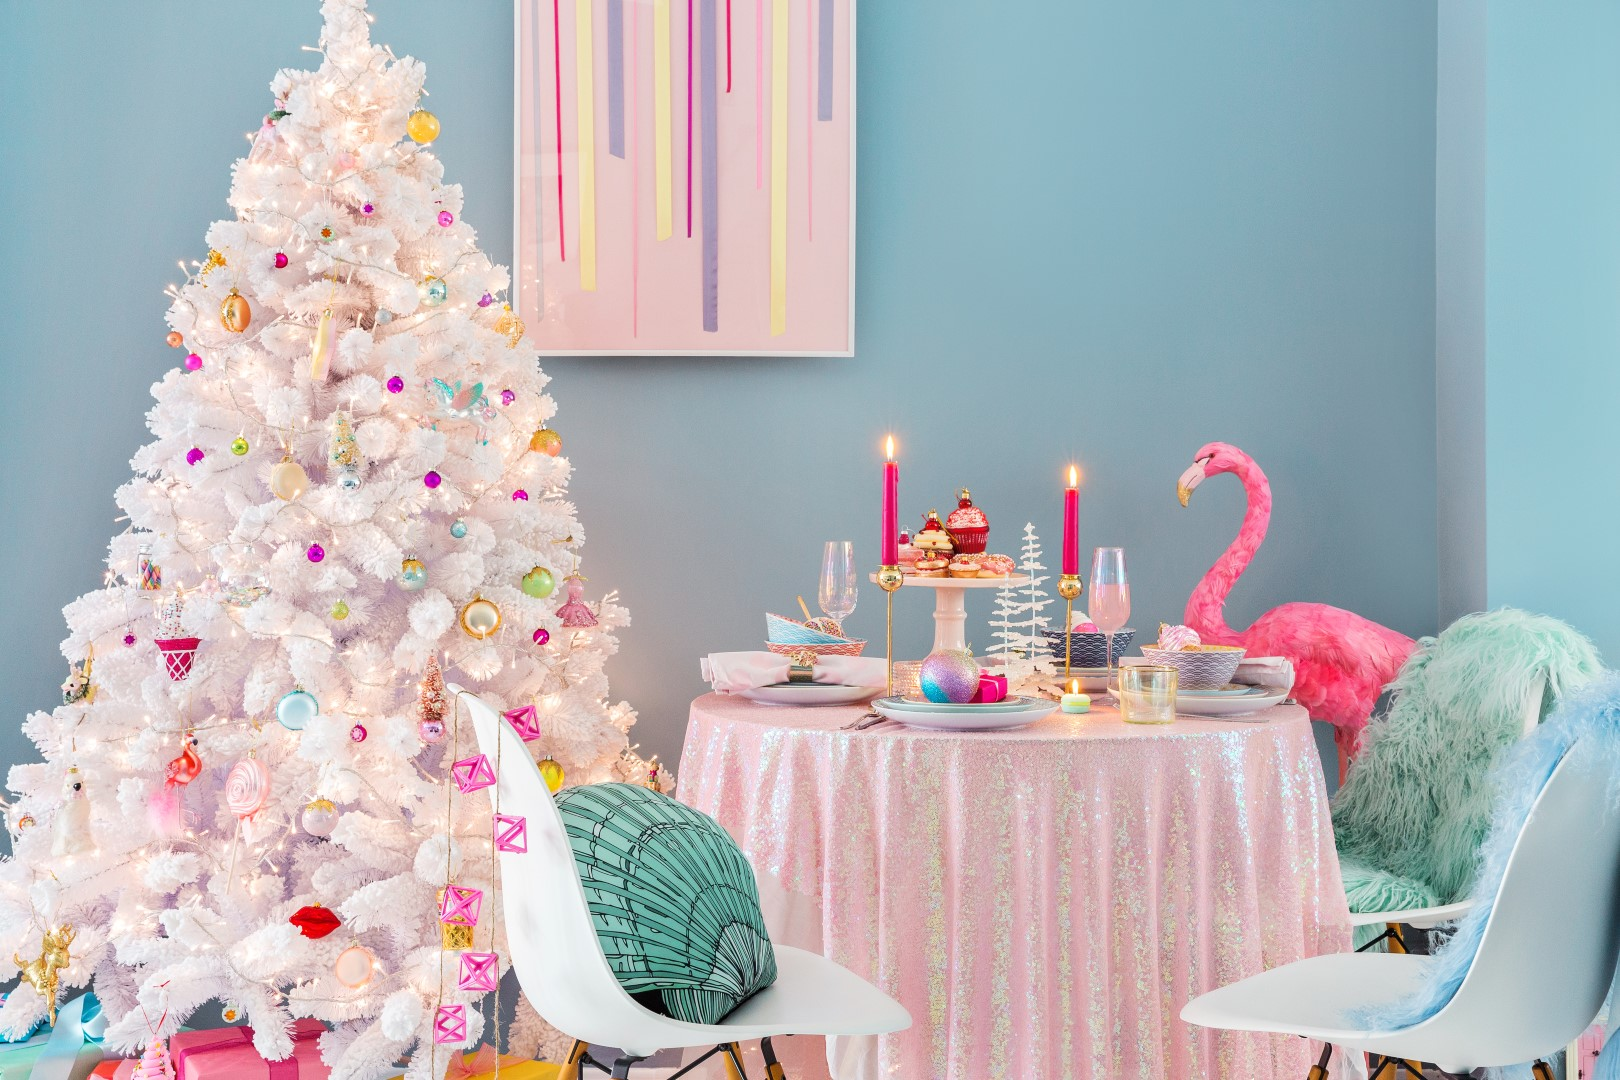 Explore Unique Christmas Decorating Ideas With The Kitschmas Trend